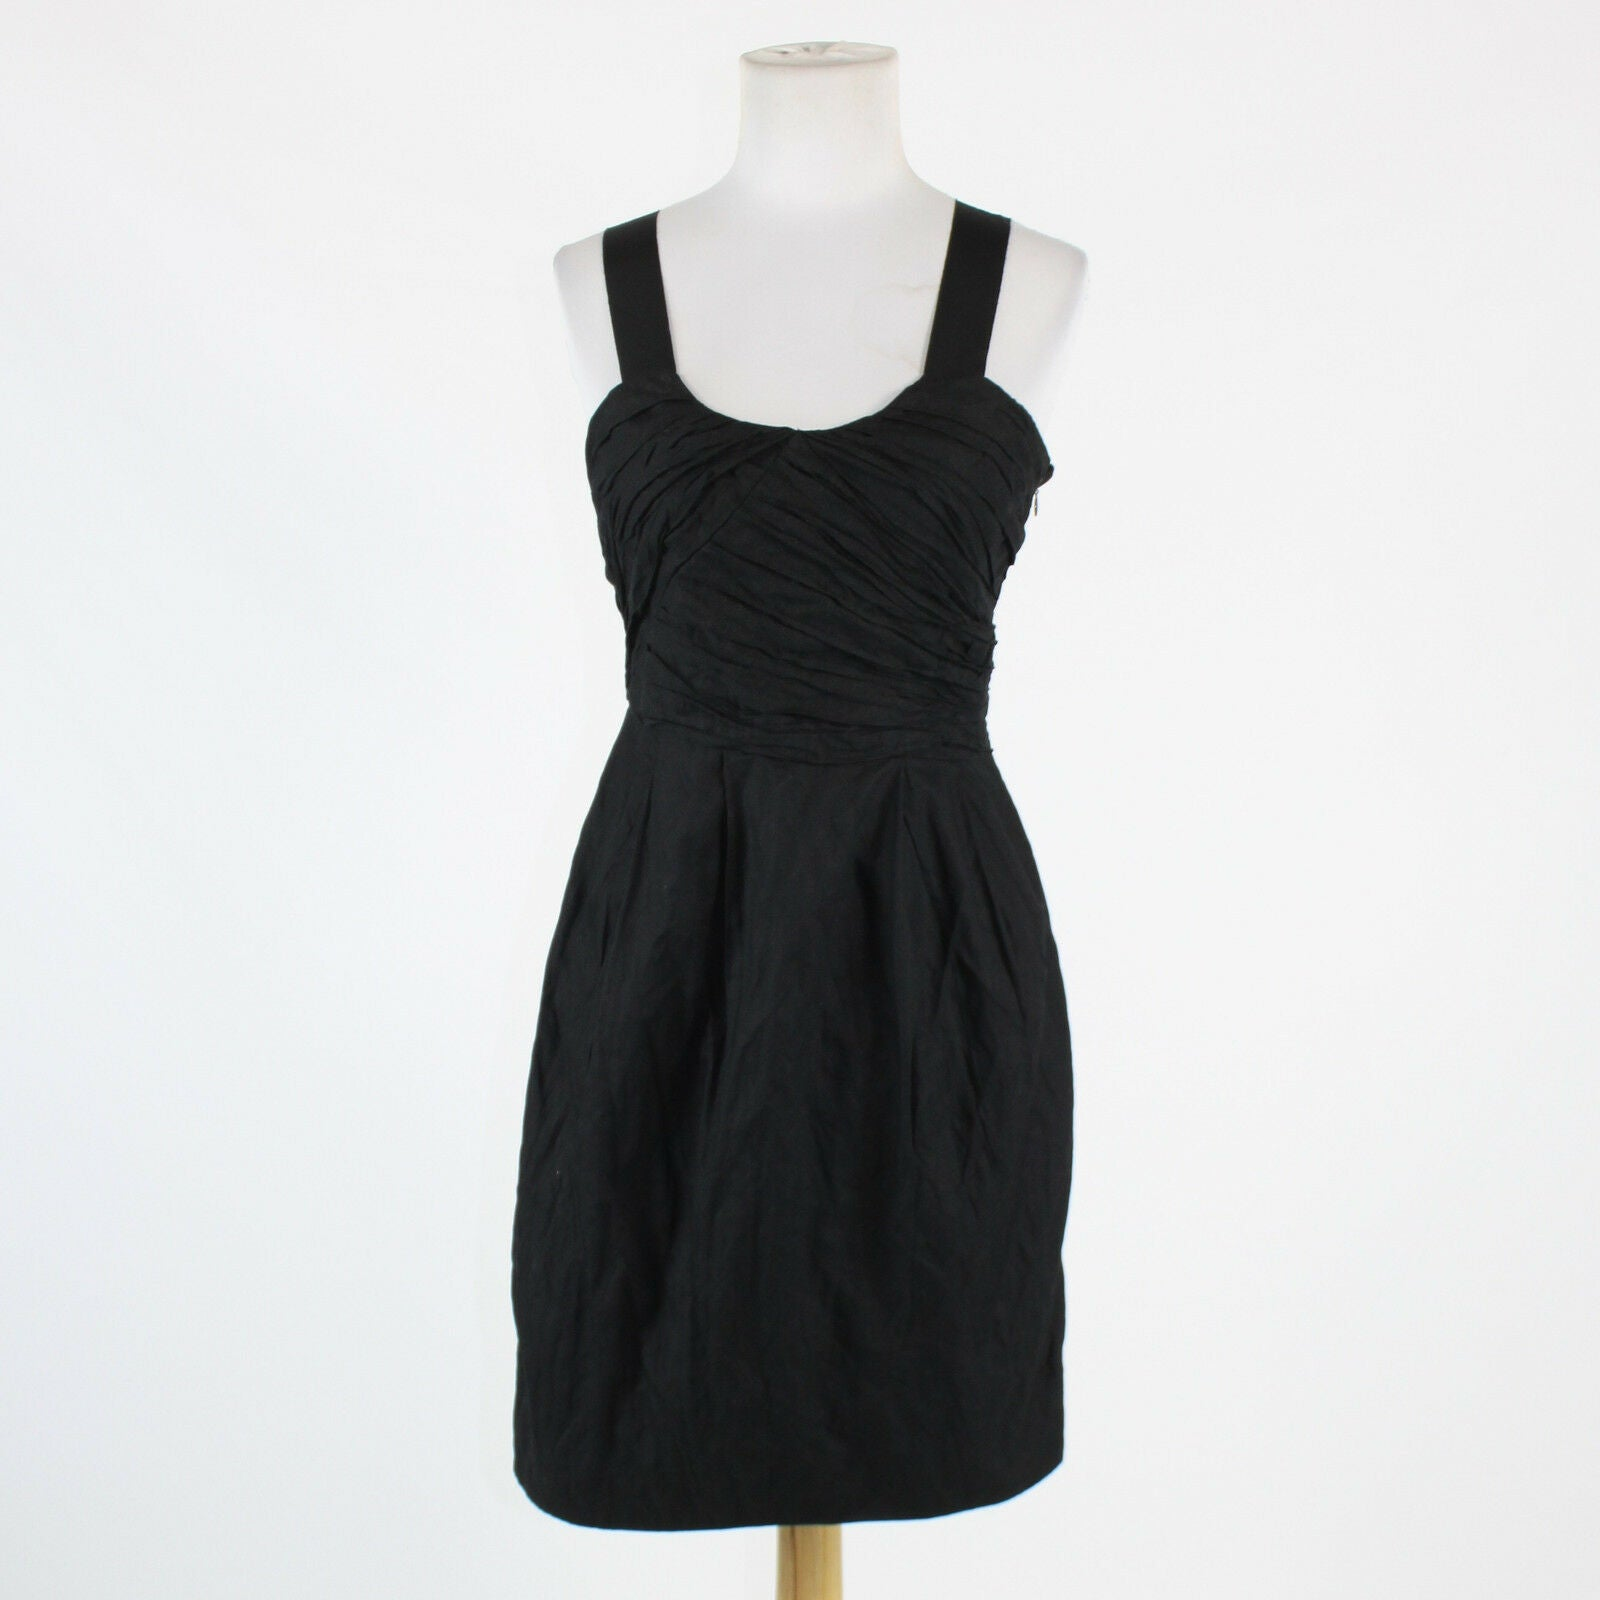 Black cotton blend J. CREW thin strap above knee crinkled bodice sheath dress 2-Newish